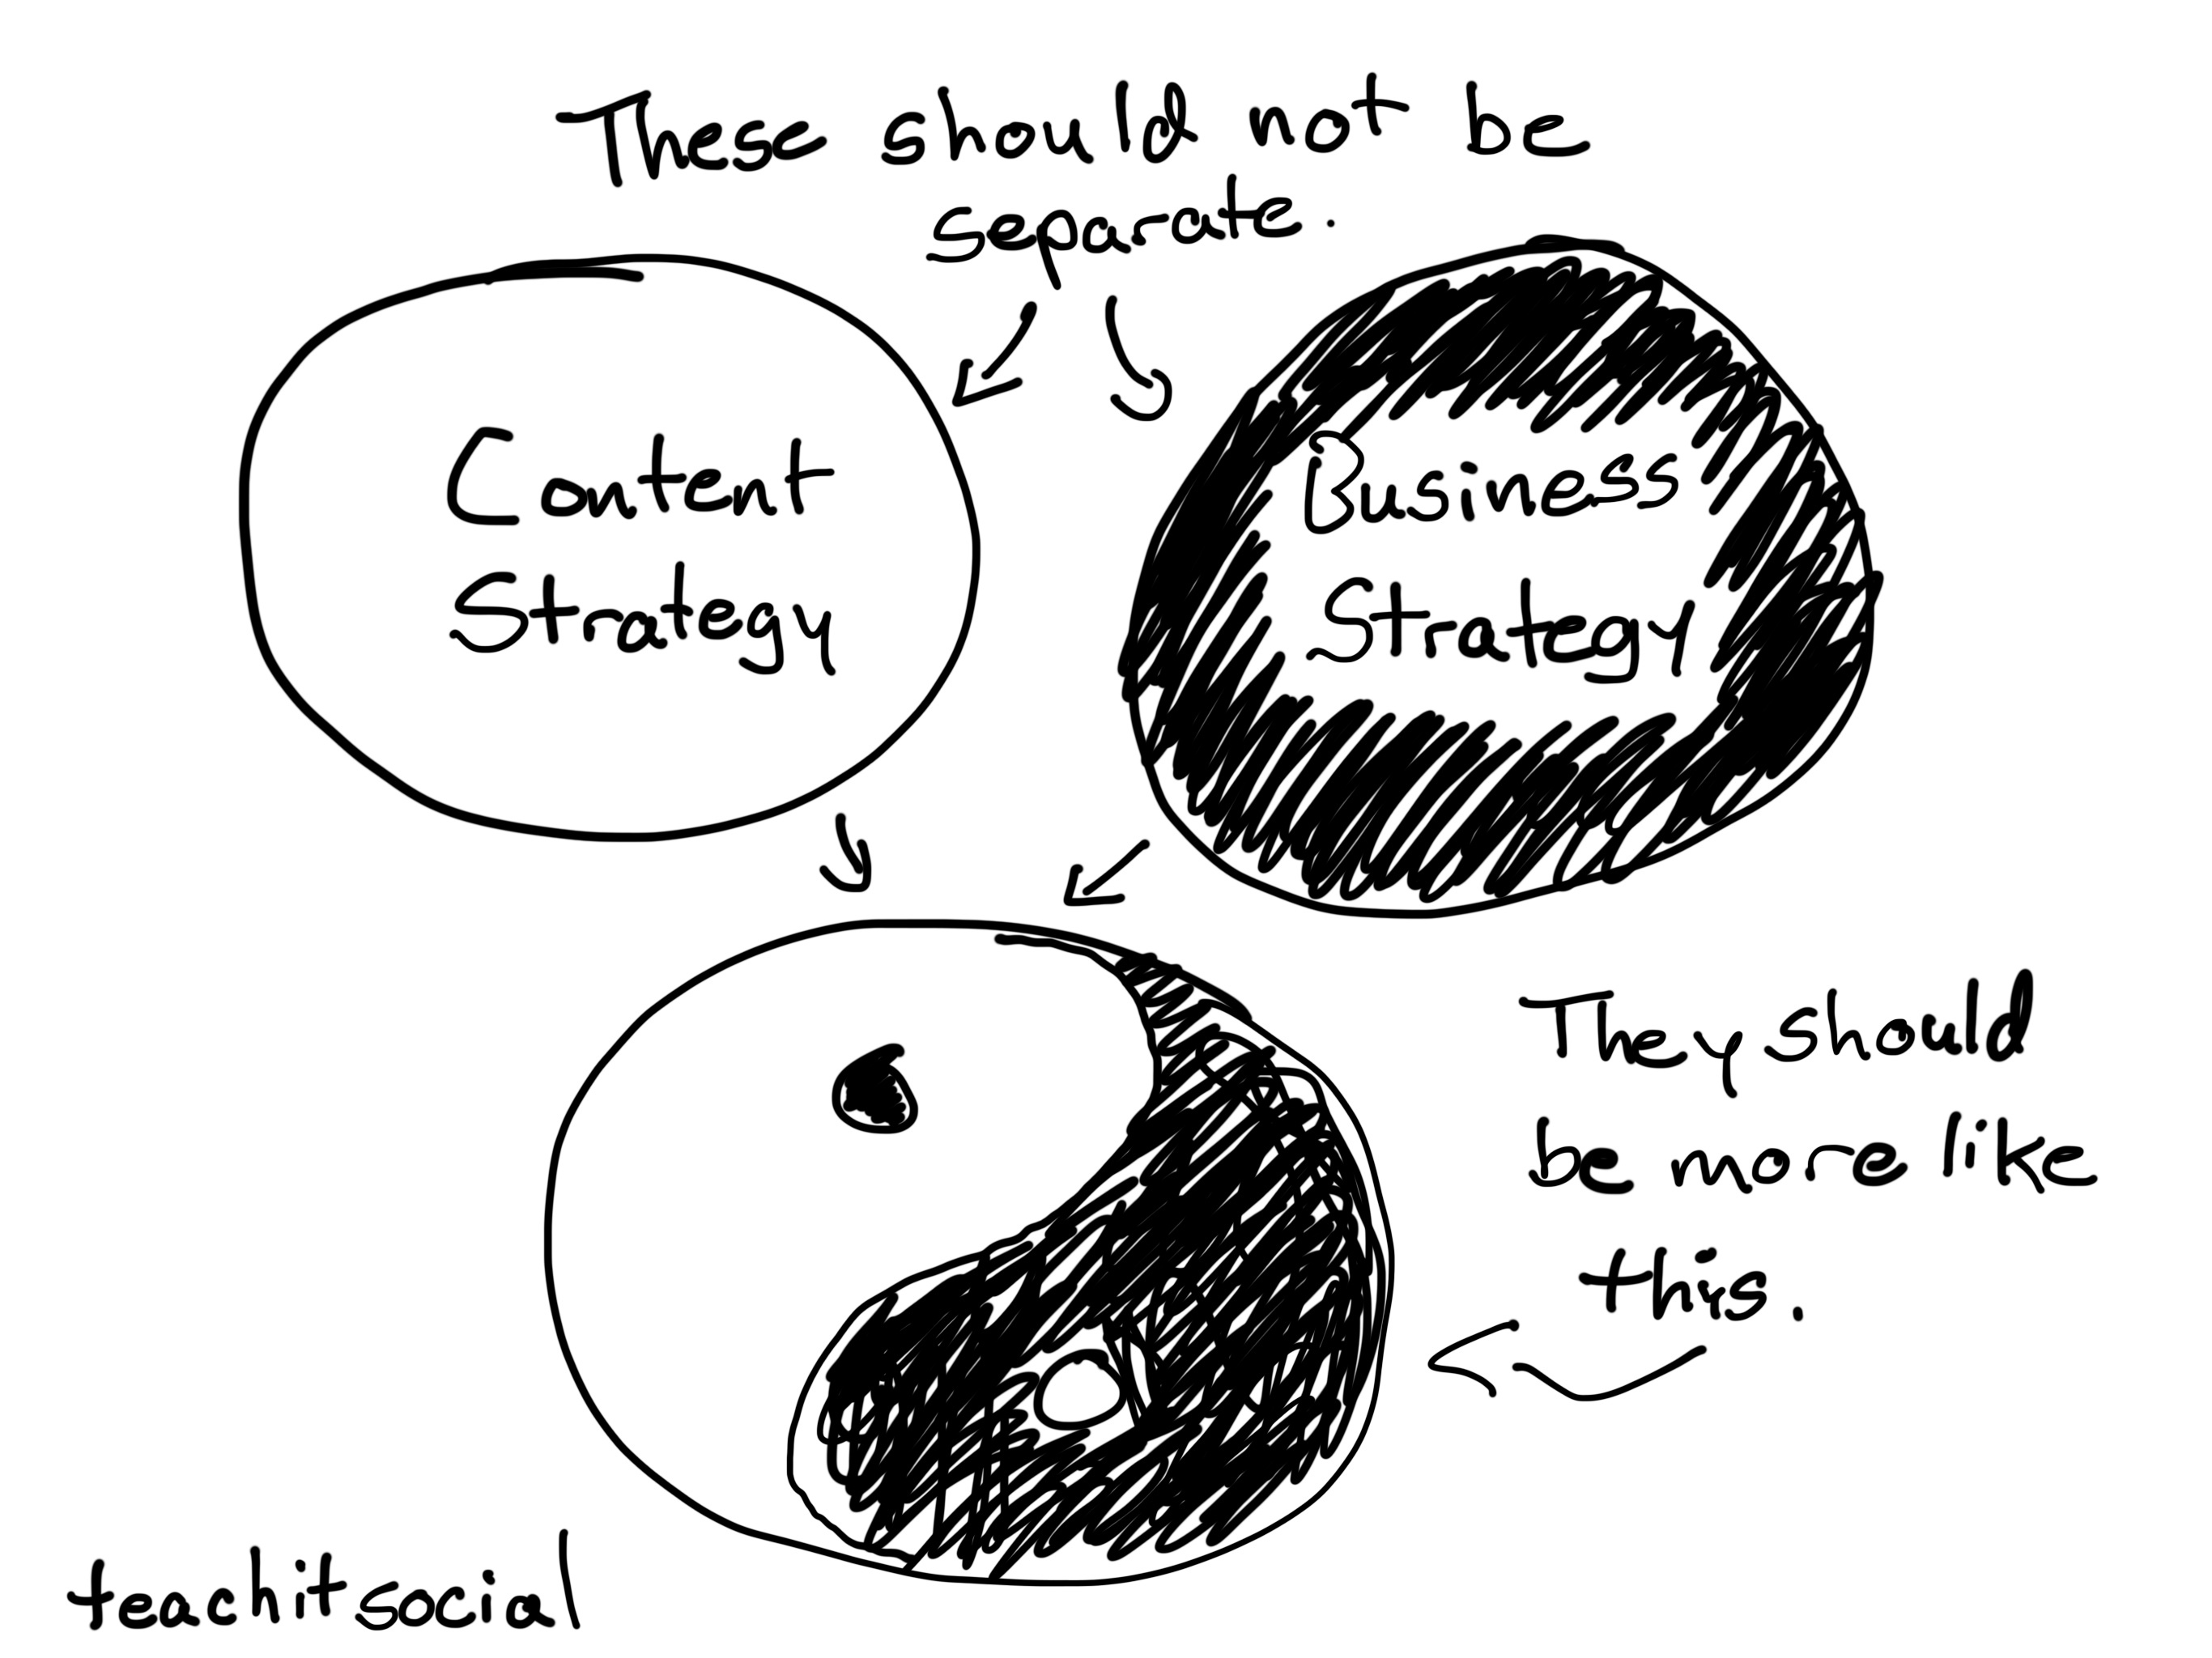 Content and Business Strategy should not be separate. They are intrinsically connected.